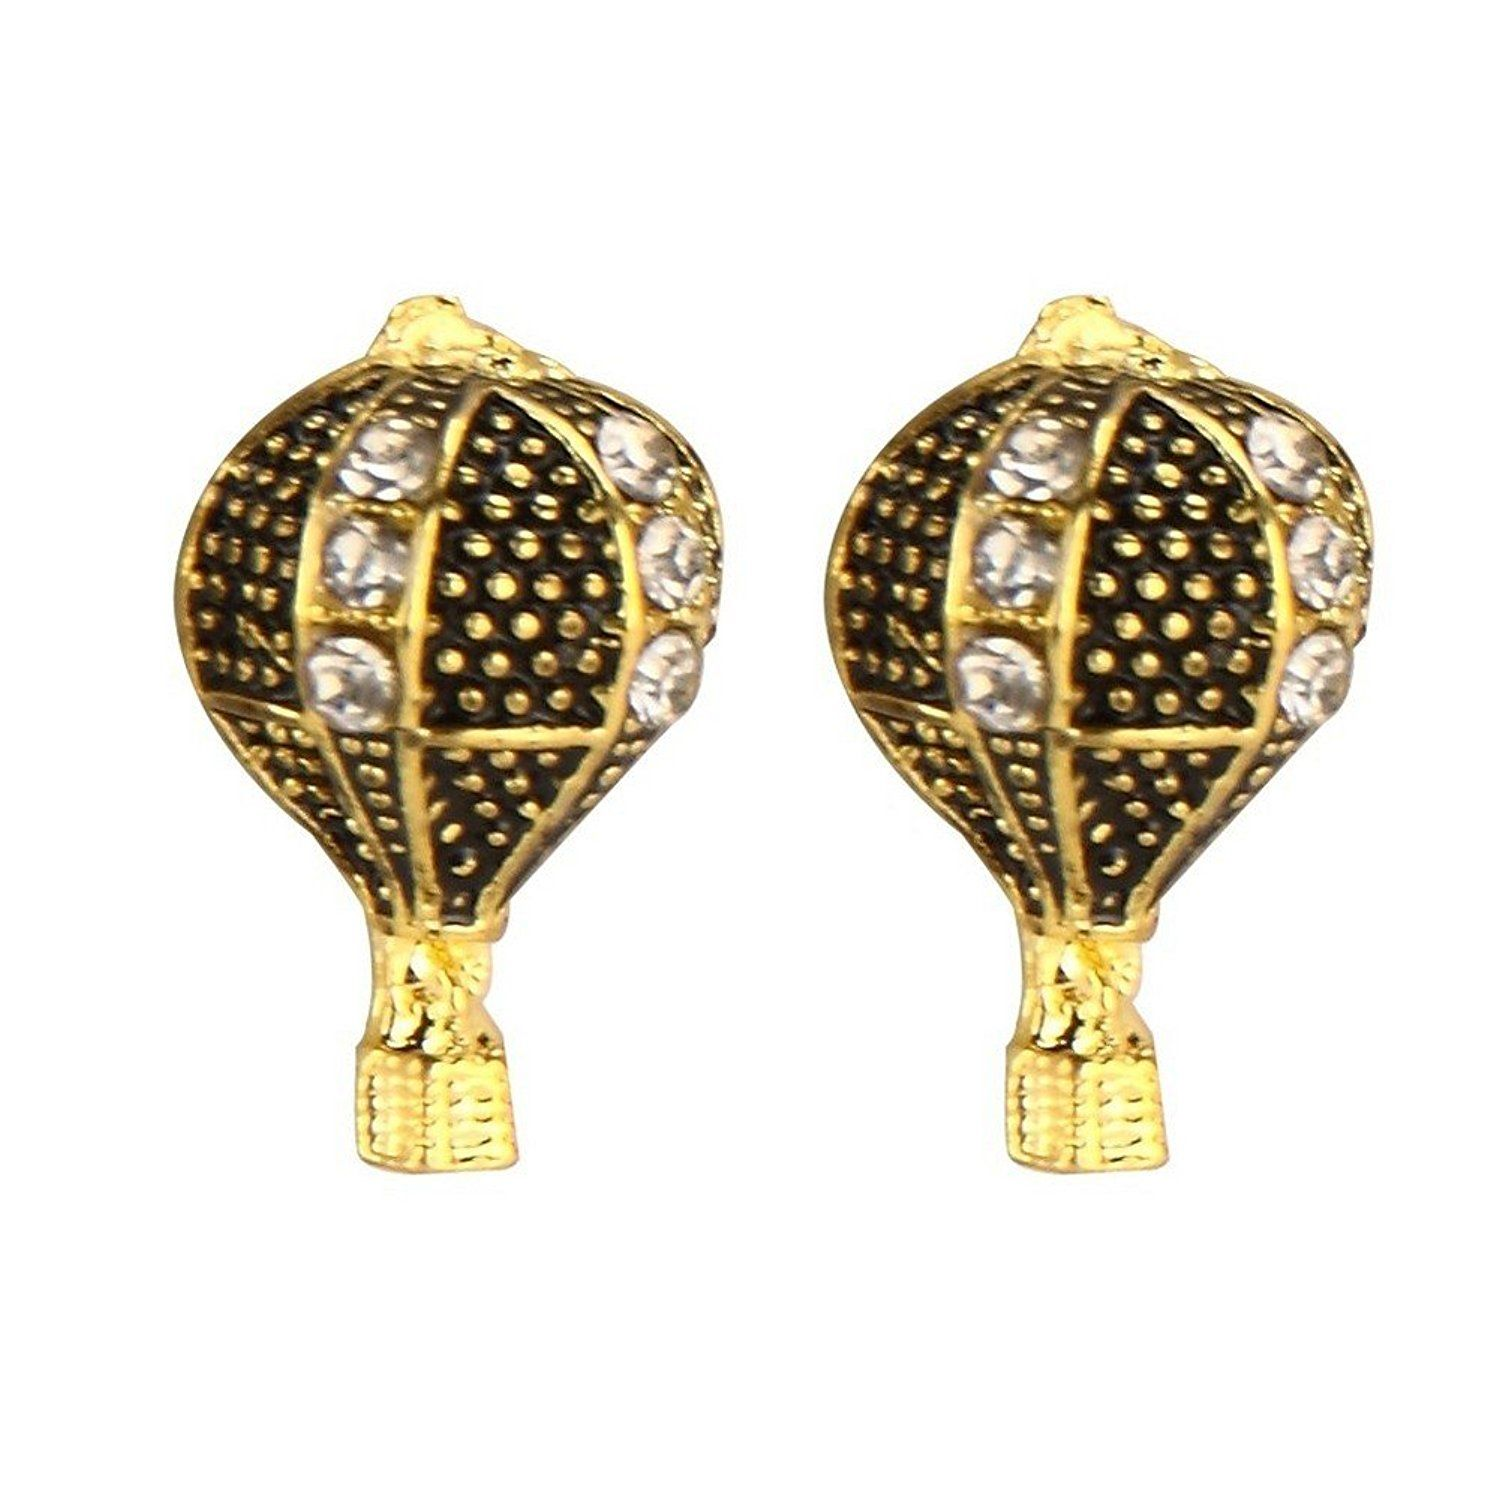 Stud Earring Hot Air Balloon (black) Made With Enamel & Tin Alloy By Joe